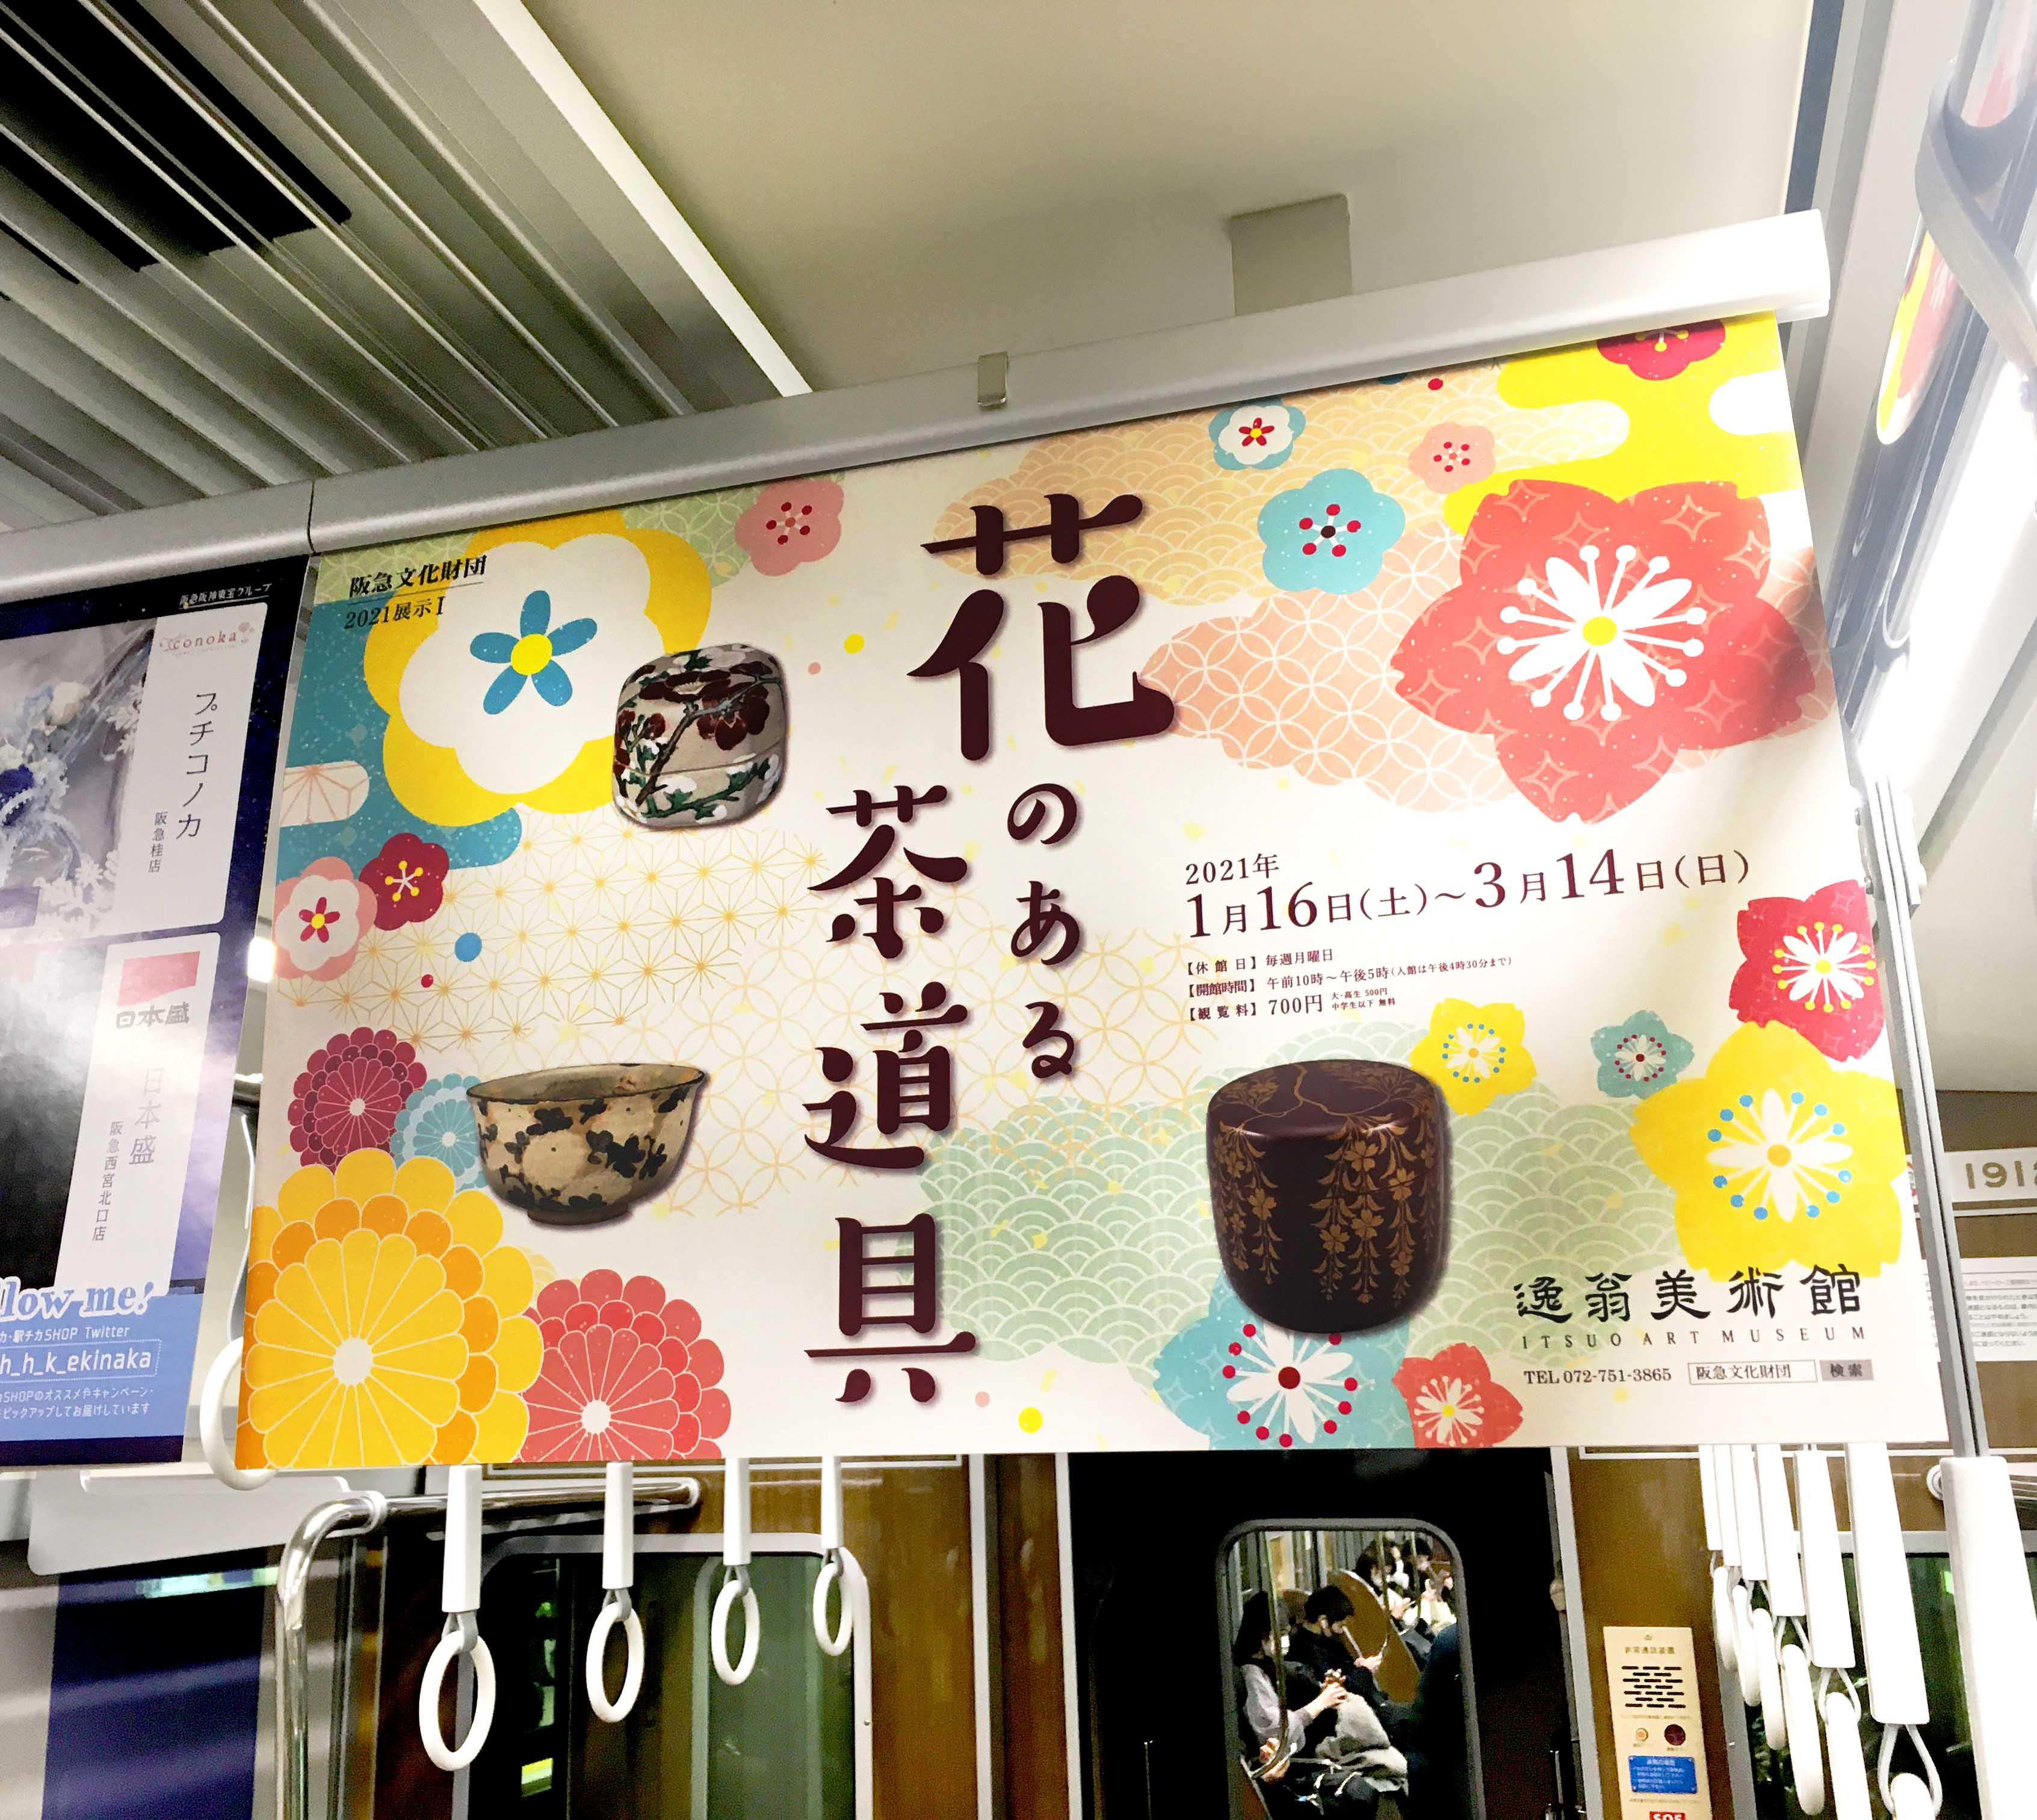 itsuou-museum